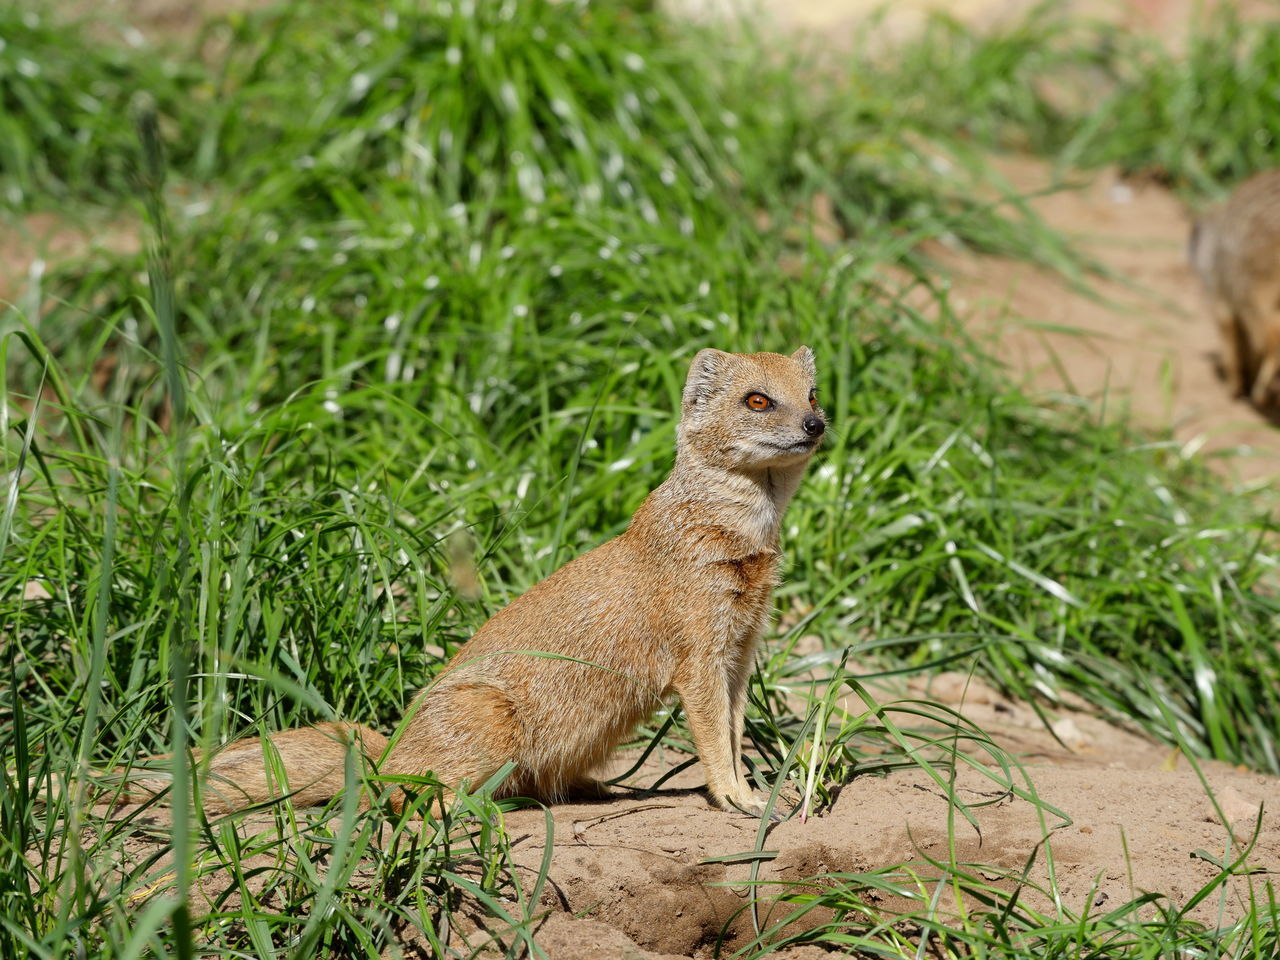 Fuchsmanguste Yellow Mongoose Mongoose Red Meerkat Animal Eyes Animals Grass No People Non Urban Scene Outdoors Sand Taking Photos From My Point Of View Animal Themes Beauty In Nature Wildlife & Nature Perspective Zoology